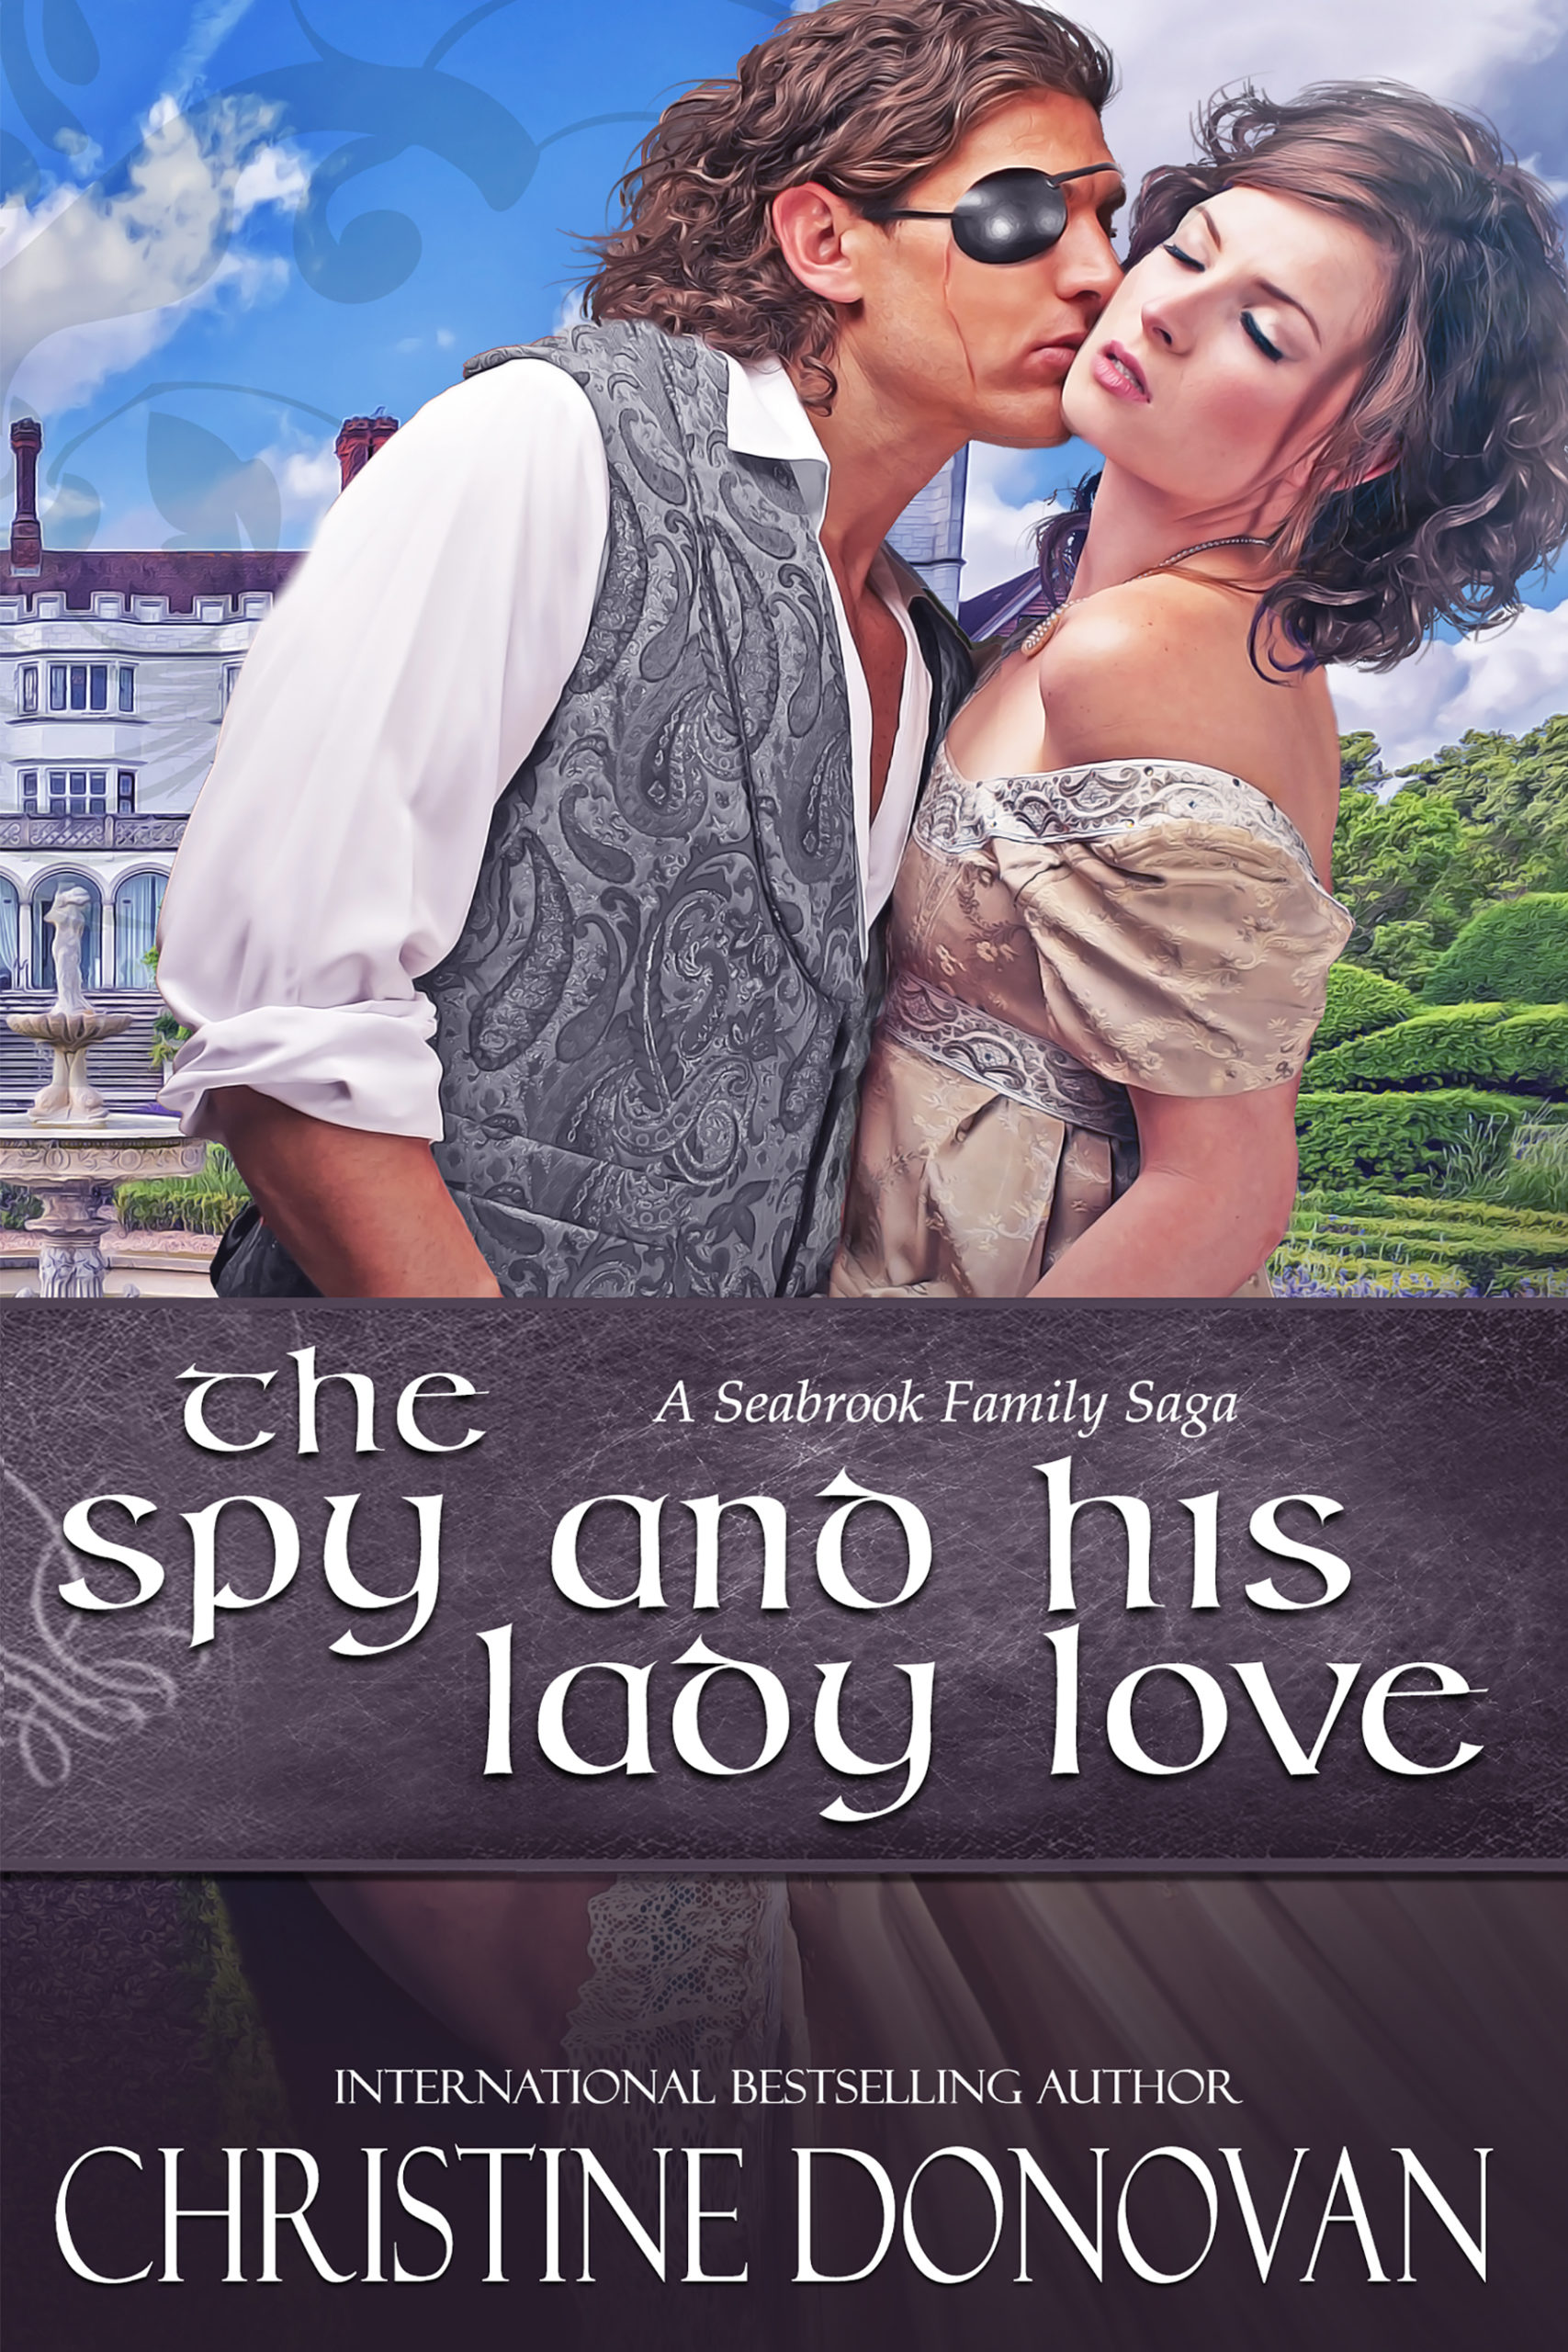 The-Spy-and-His-Lady-Love-high-res-scaled